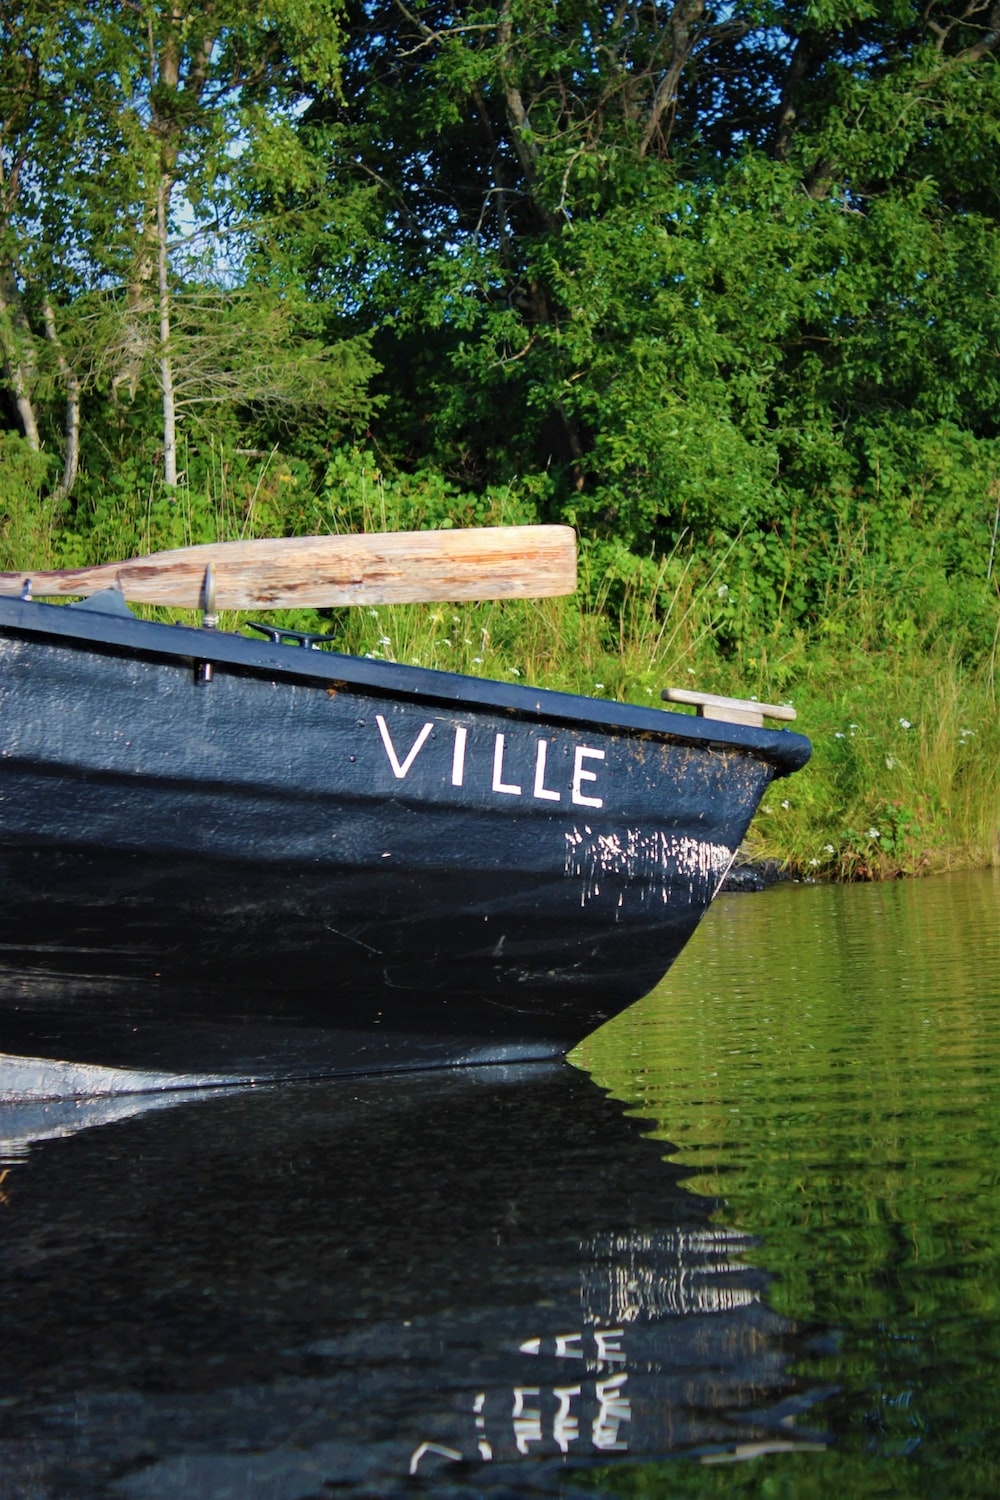 black and blue boat on lake dock during daytime